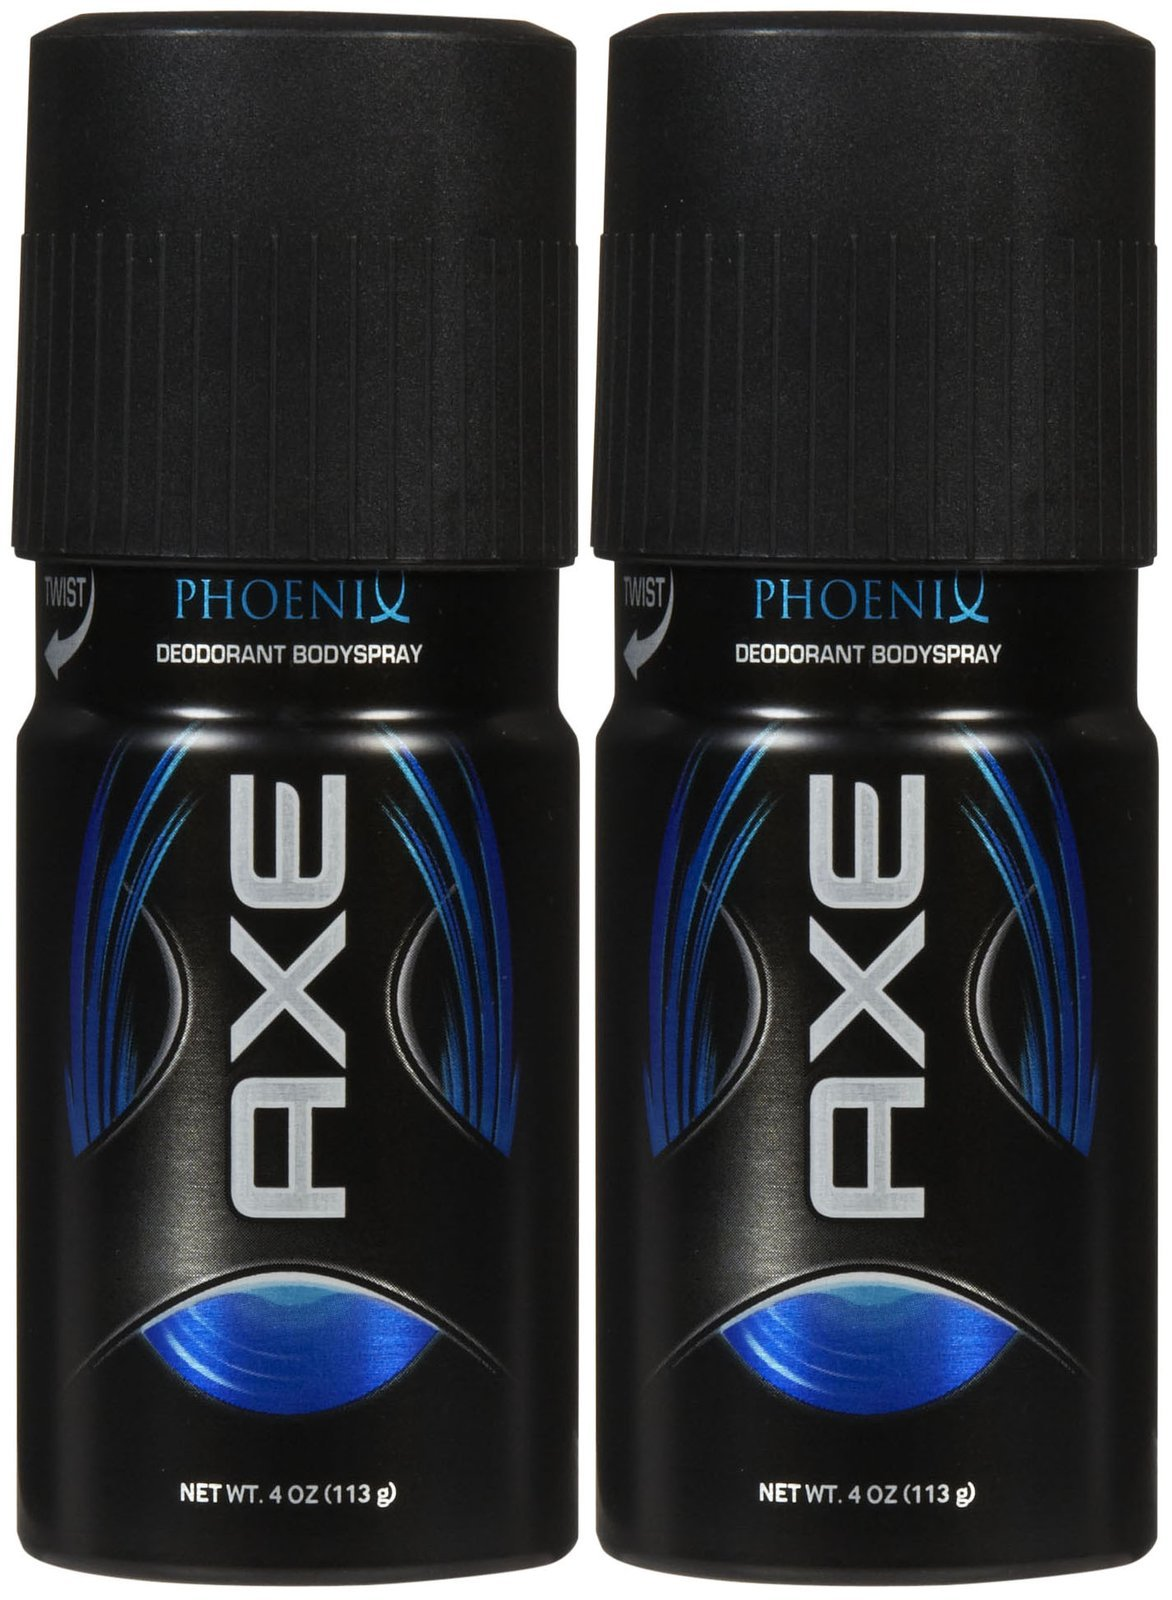 AXE Body Spray for Men - Phoenix - 4 oz - 2 pk